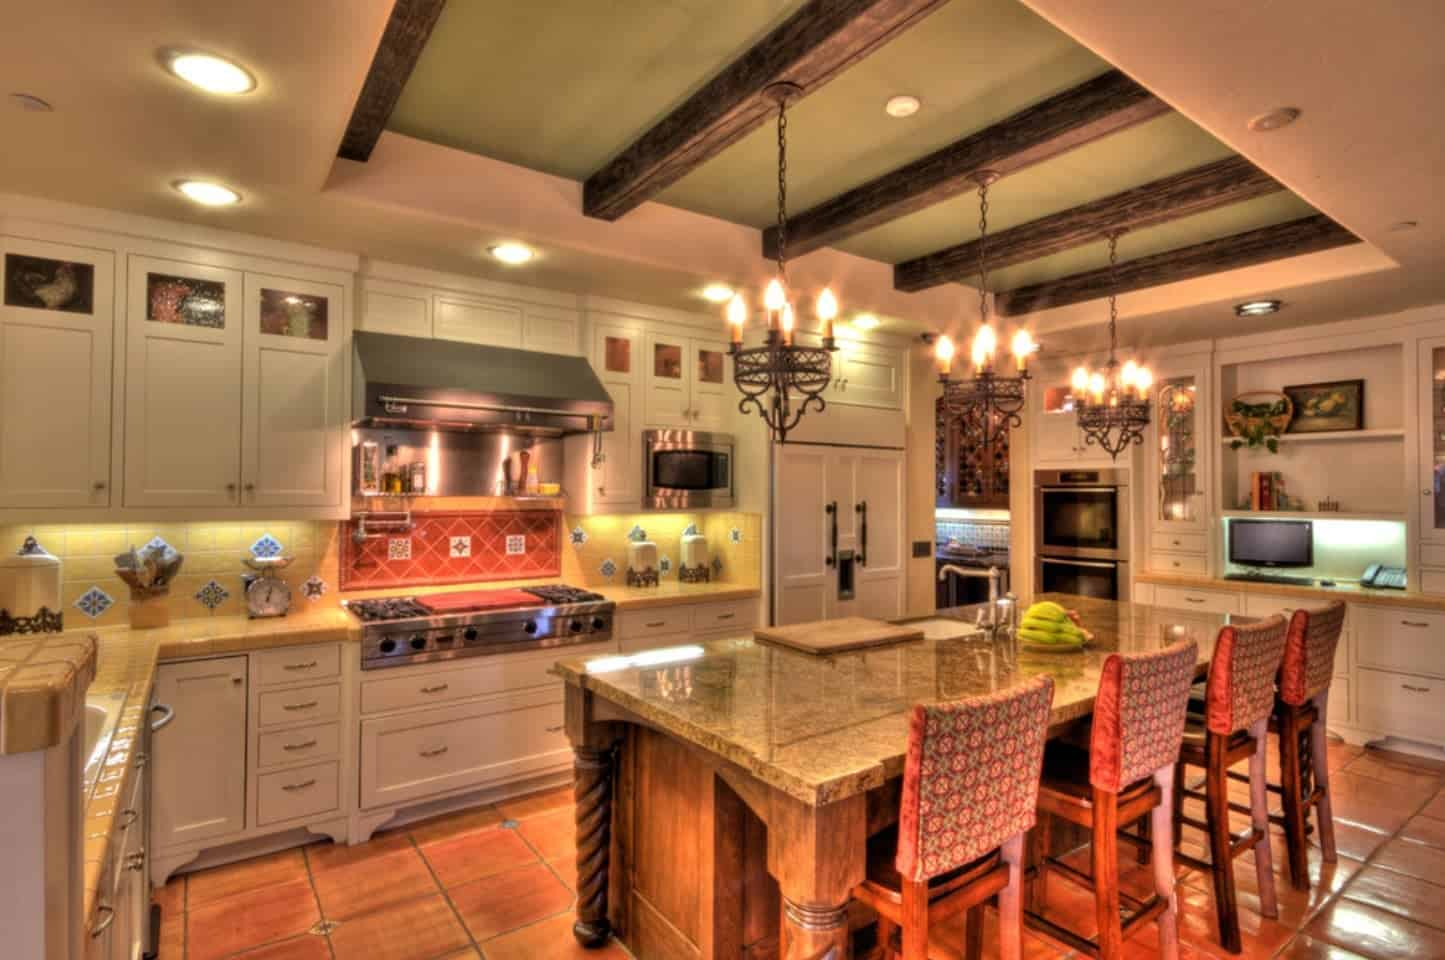 This charming and homey Spanish-style kitchen has a beige ceiling with its middle tray filled with exposed wooden beams. These beams support the small chandelier that cast warm yellow lights on the wooden kitchen island with the same brown marble countertop as the L-shaped light gray peninsula.